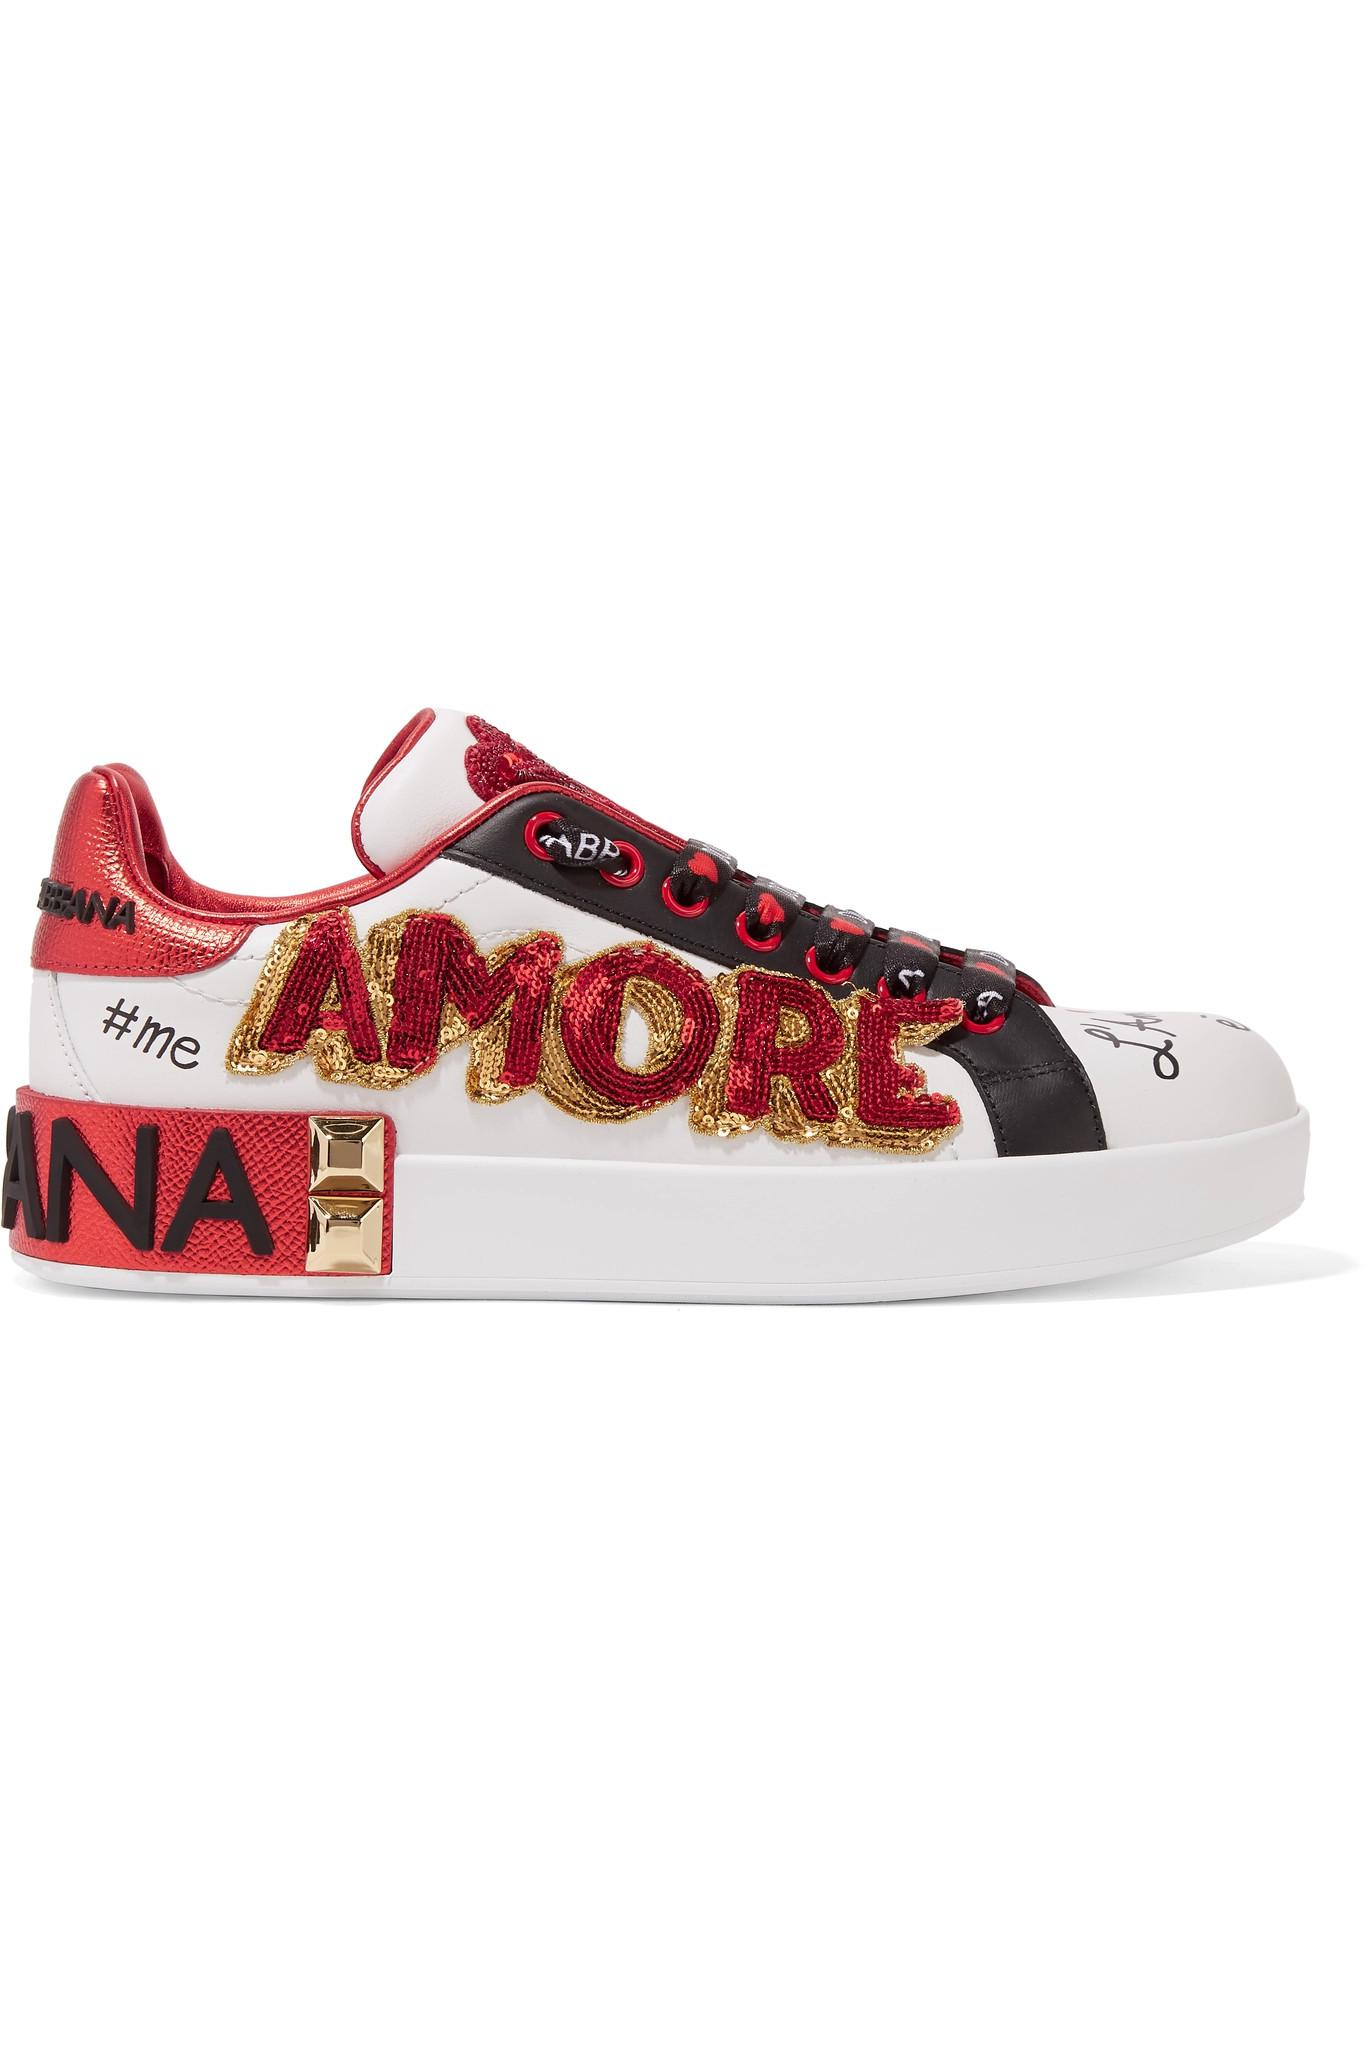 64a081eca0b7 Lyst - Dolce   Gabbana Embellished Printed Leather Sneakers in White ...